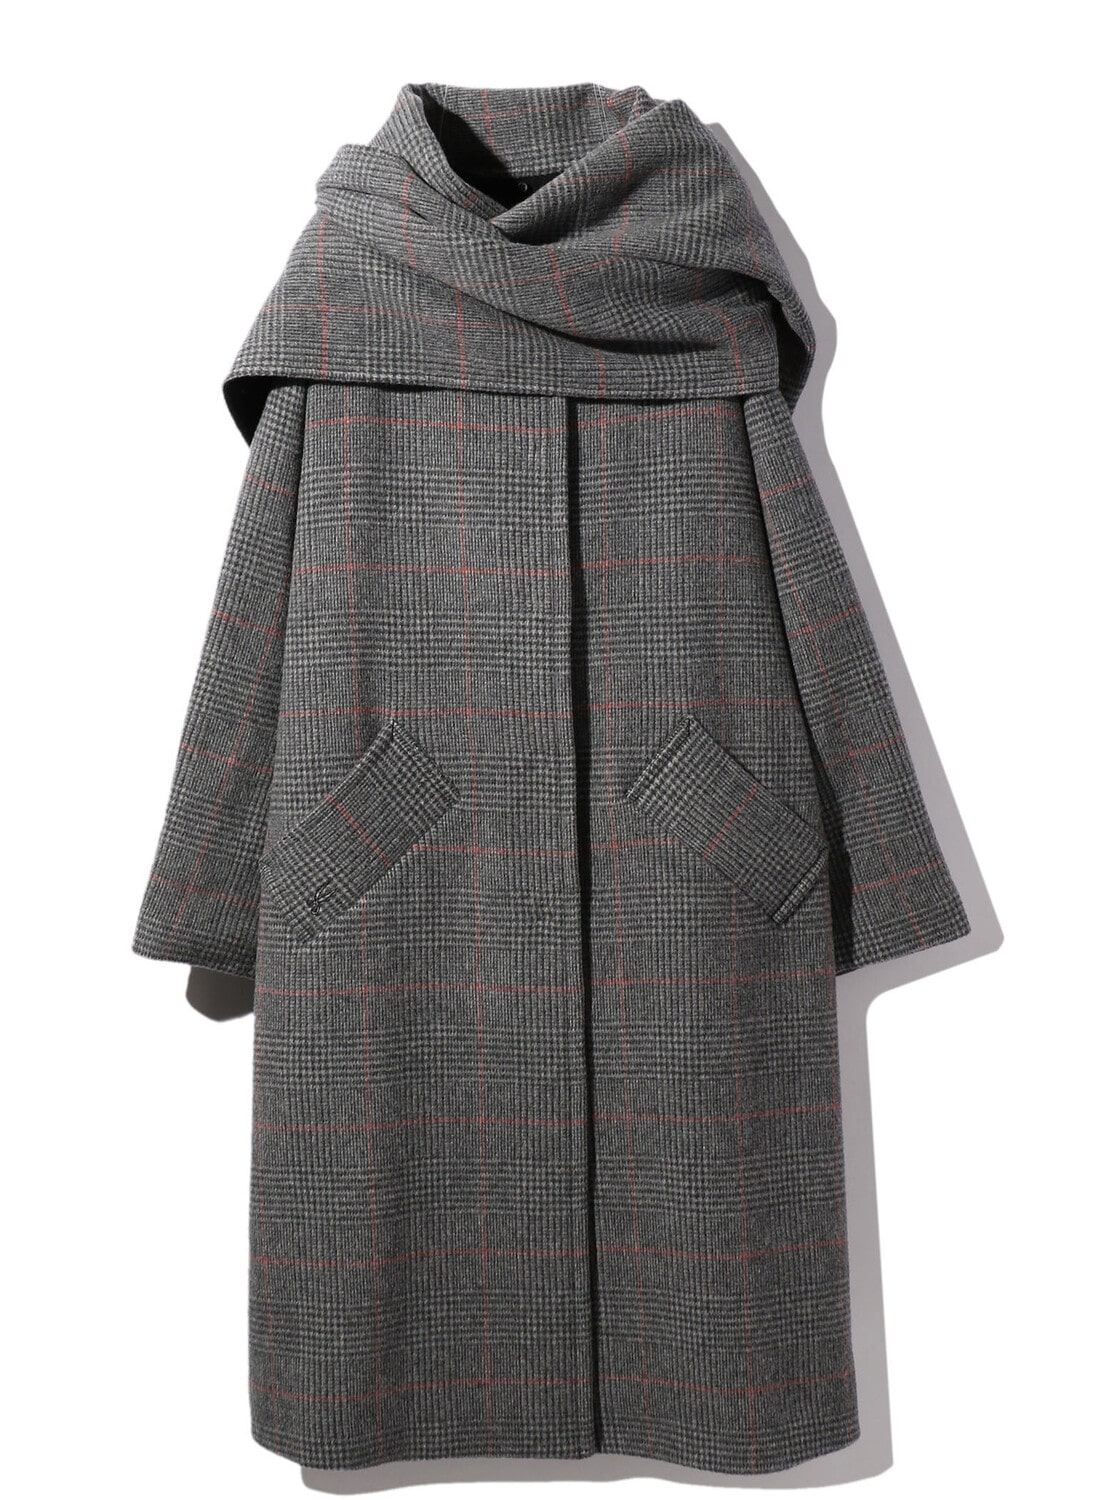 【日本限定】GNOME WOOL COAT